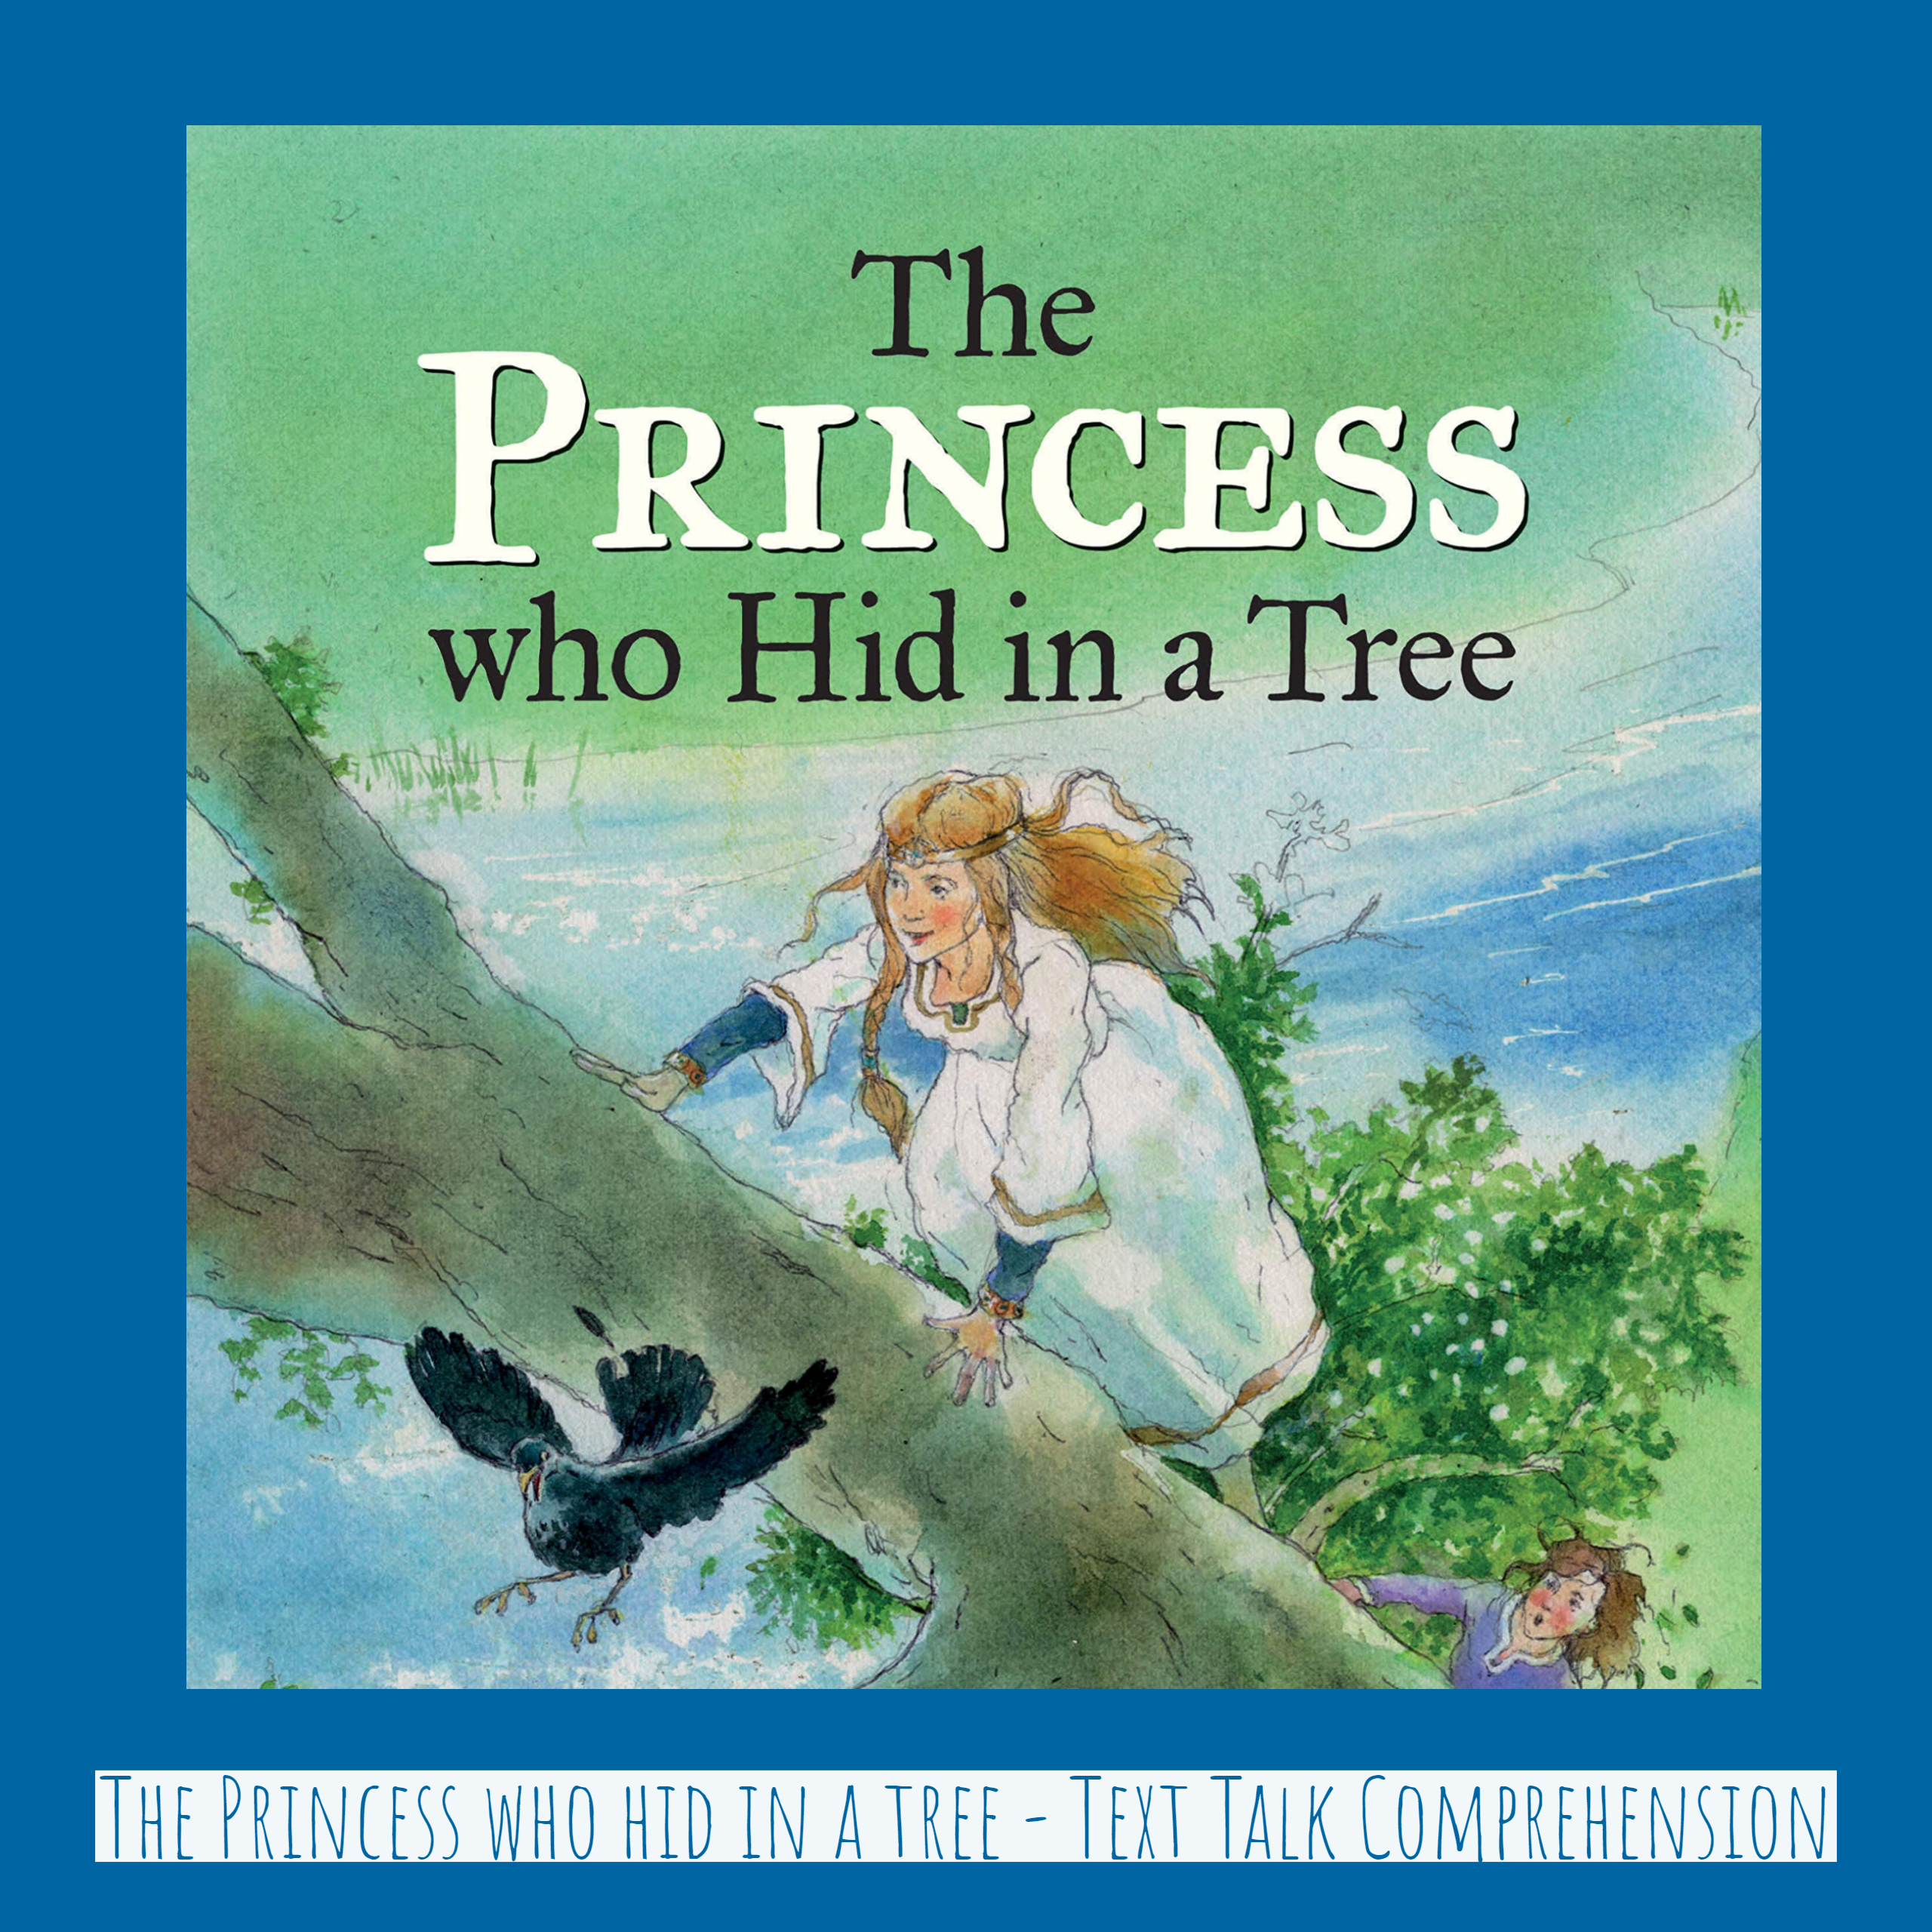 The princess who hid in the tree